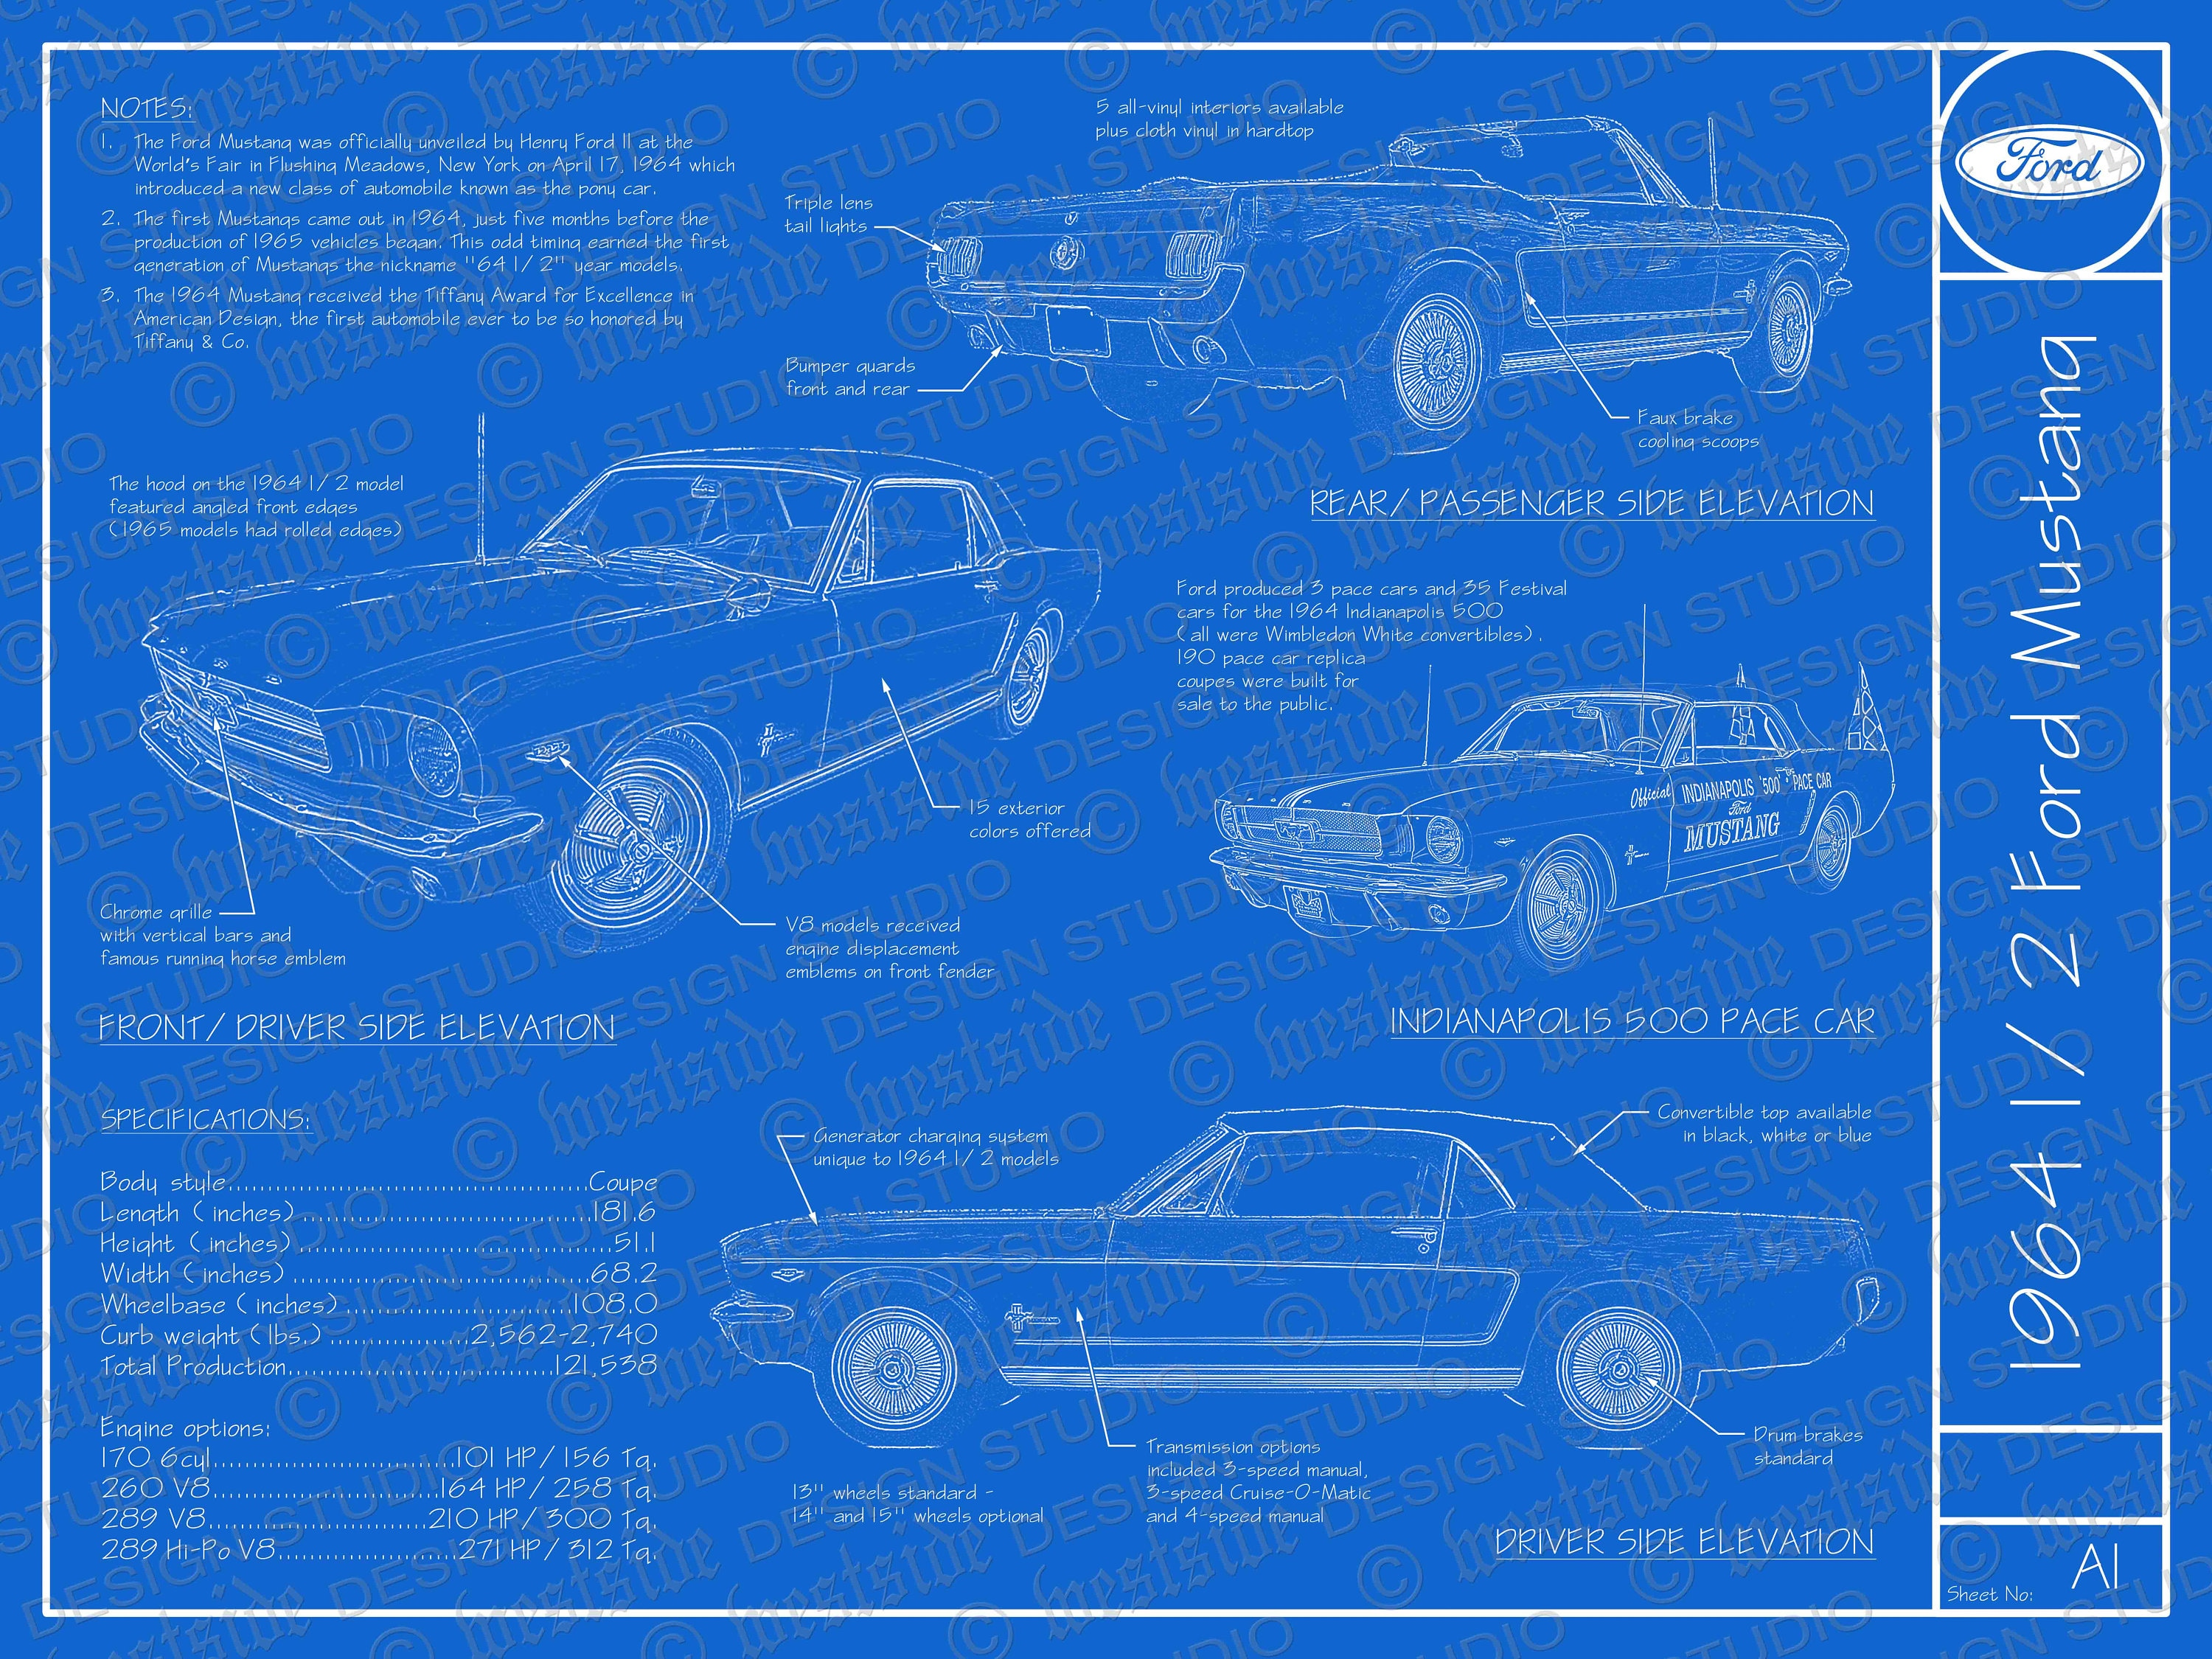 1964 1 2 Ford Mustang Blueprint Poster 18x24 Jpeg Etsy Paint Colors 50